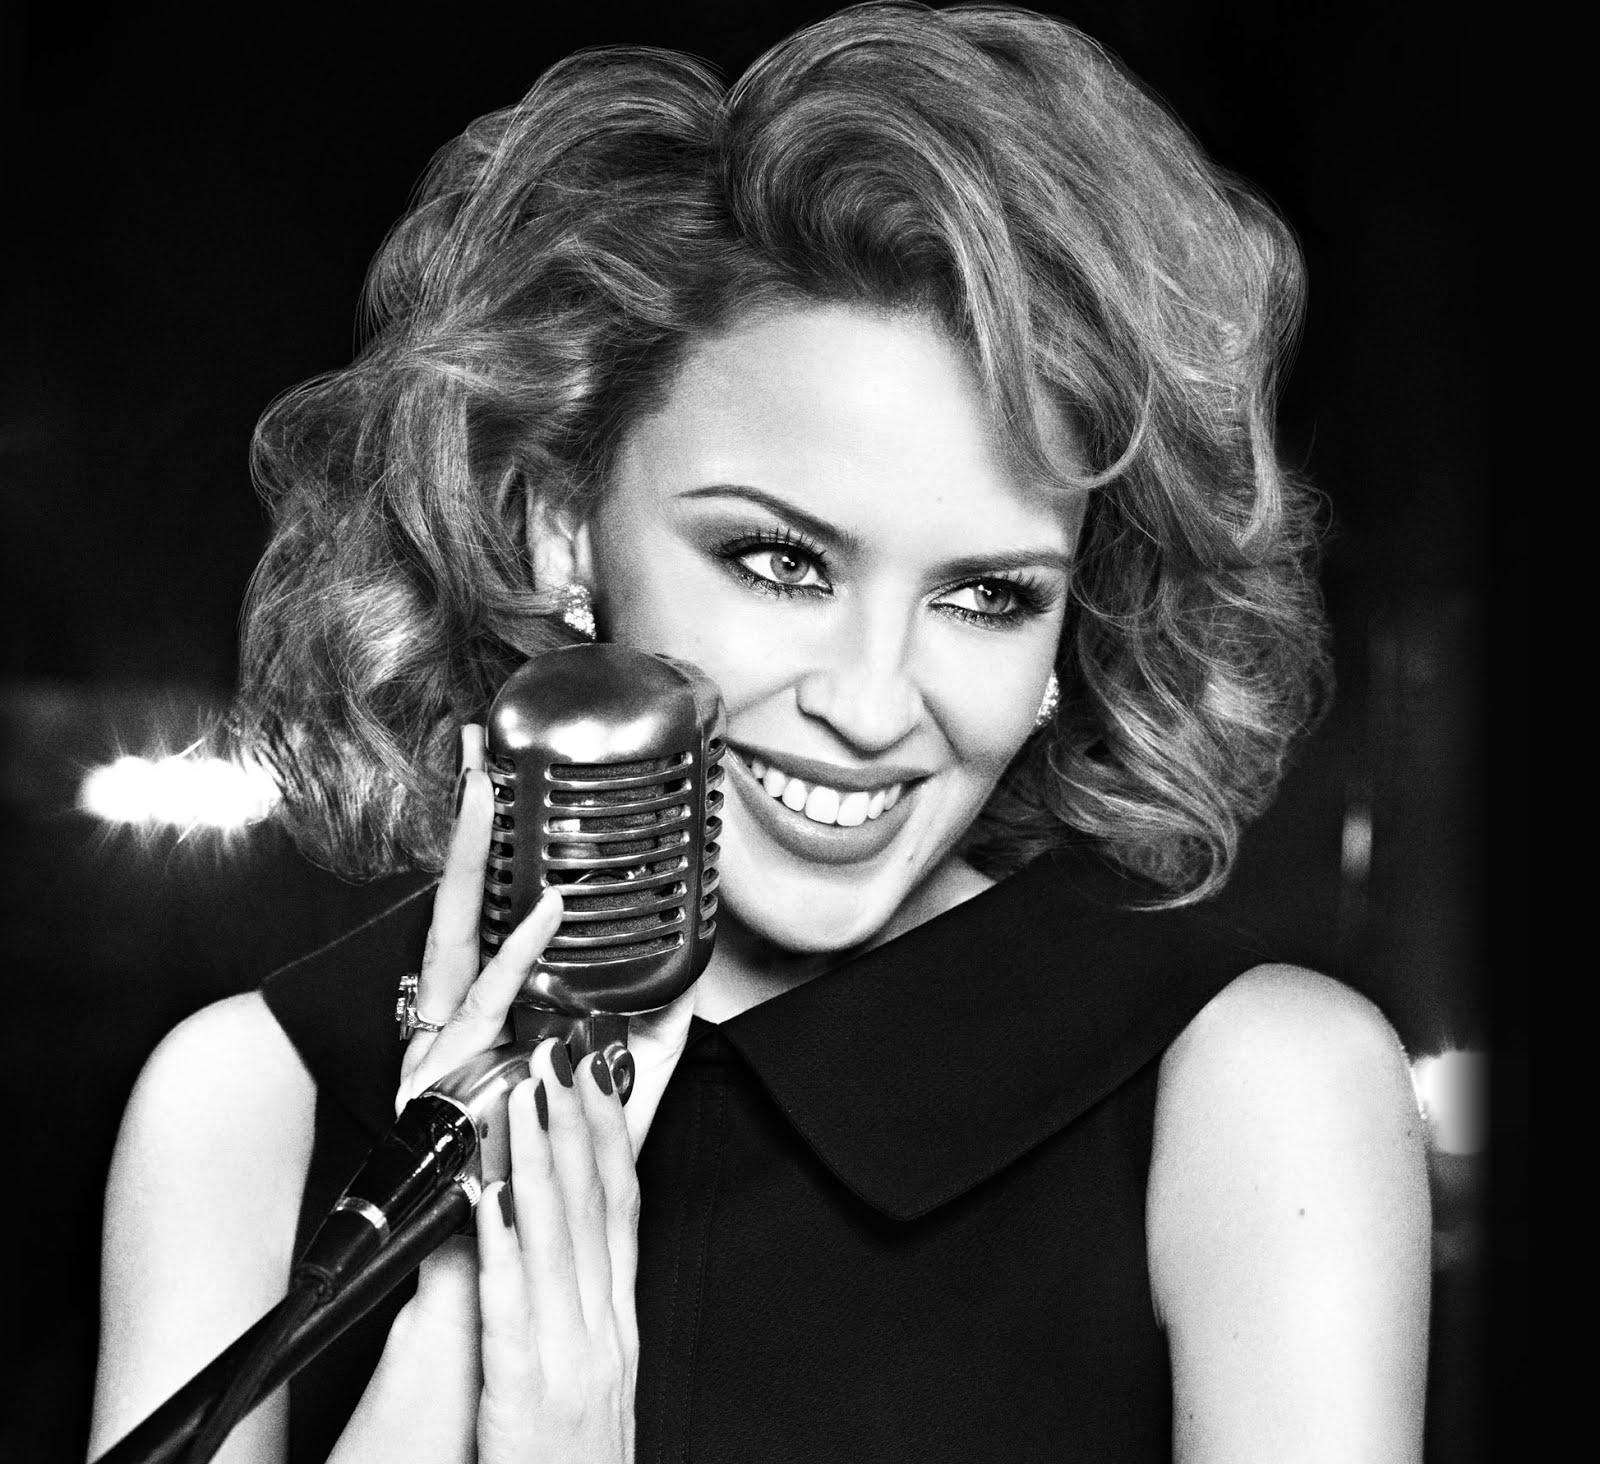 http://3.bp.blogspot.com/-AhK6BfCUu44/UI68w9F4rjI/AAAAAAAAAKI/wnZaxNSm3NE/s1600/Kylie_Minogue_The+Abbey_Road_Sessions.jpg